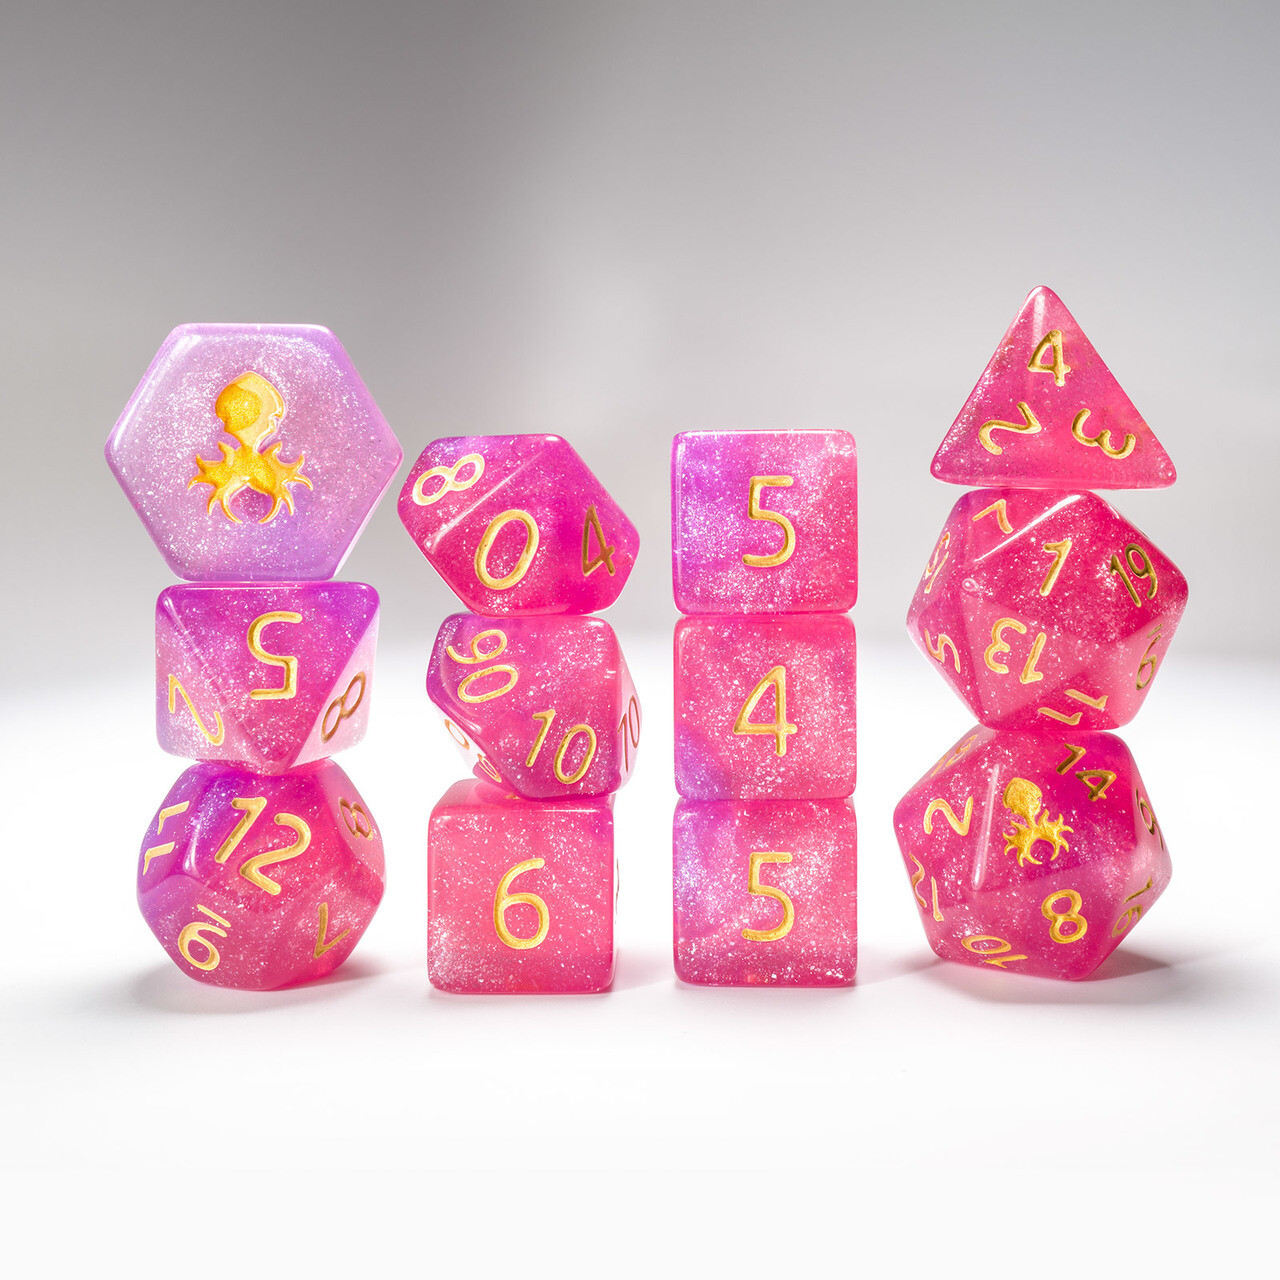 Hydrangea 12pc Glimmer RPG Dice Set with Gold Ink